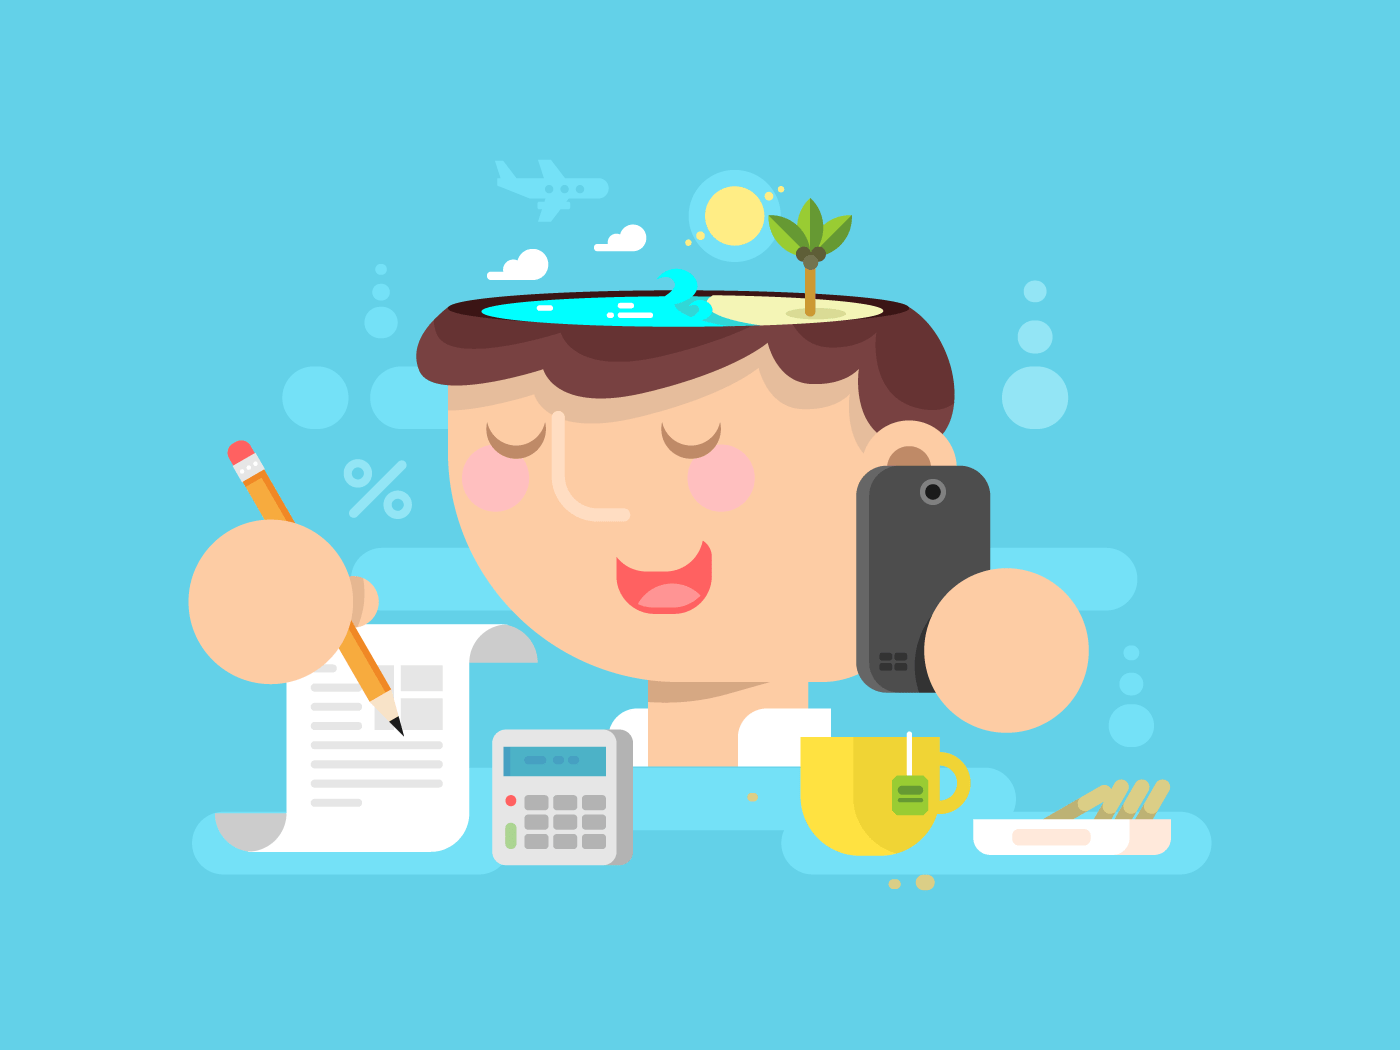 Thoughts in head Vacation planning flat vector illustration